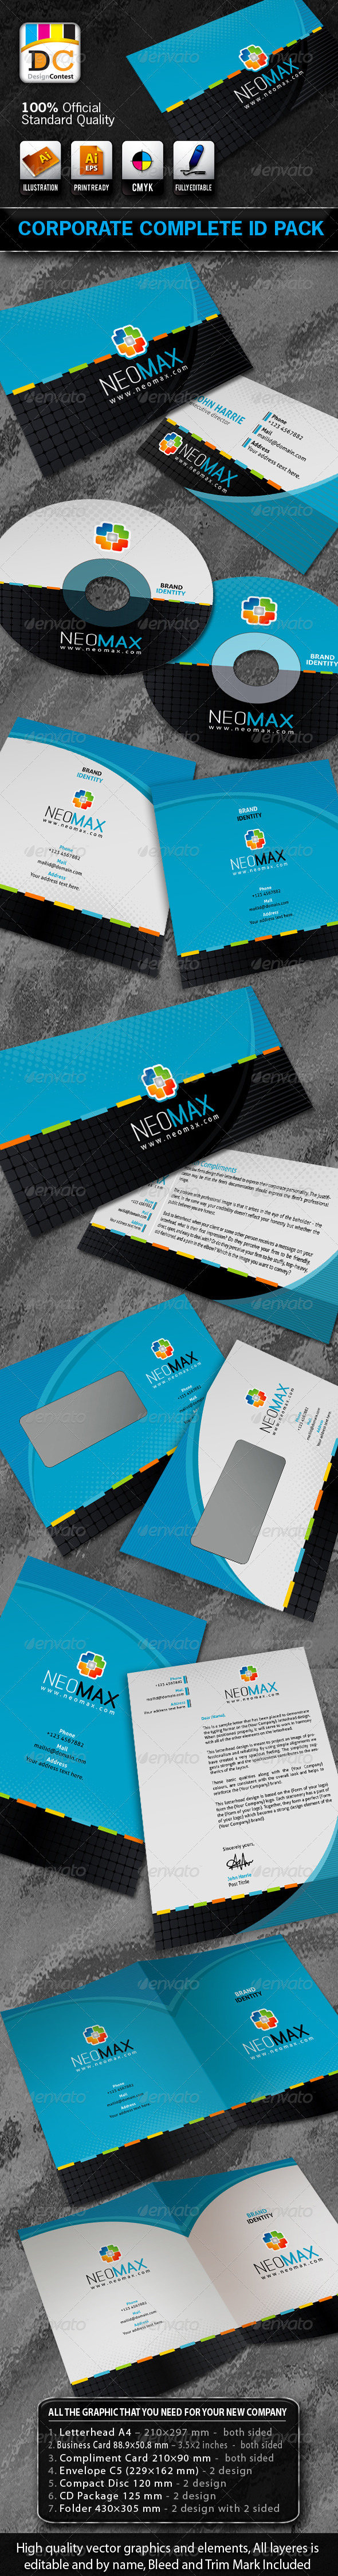 Neo Max Corporate Complete ID Pack - Stationery Print Templates